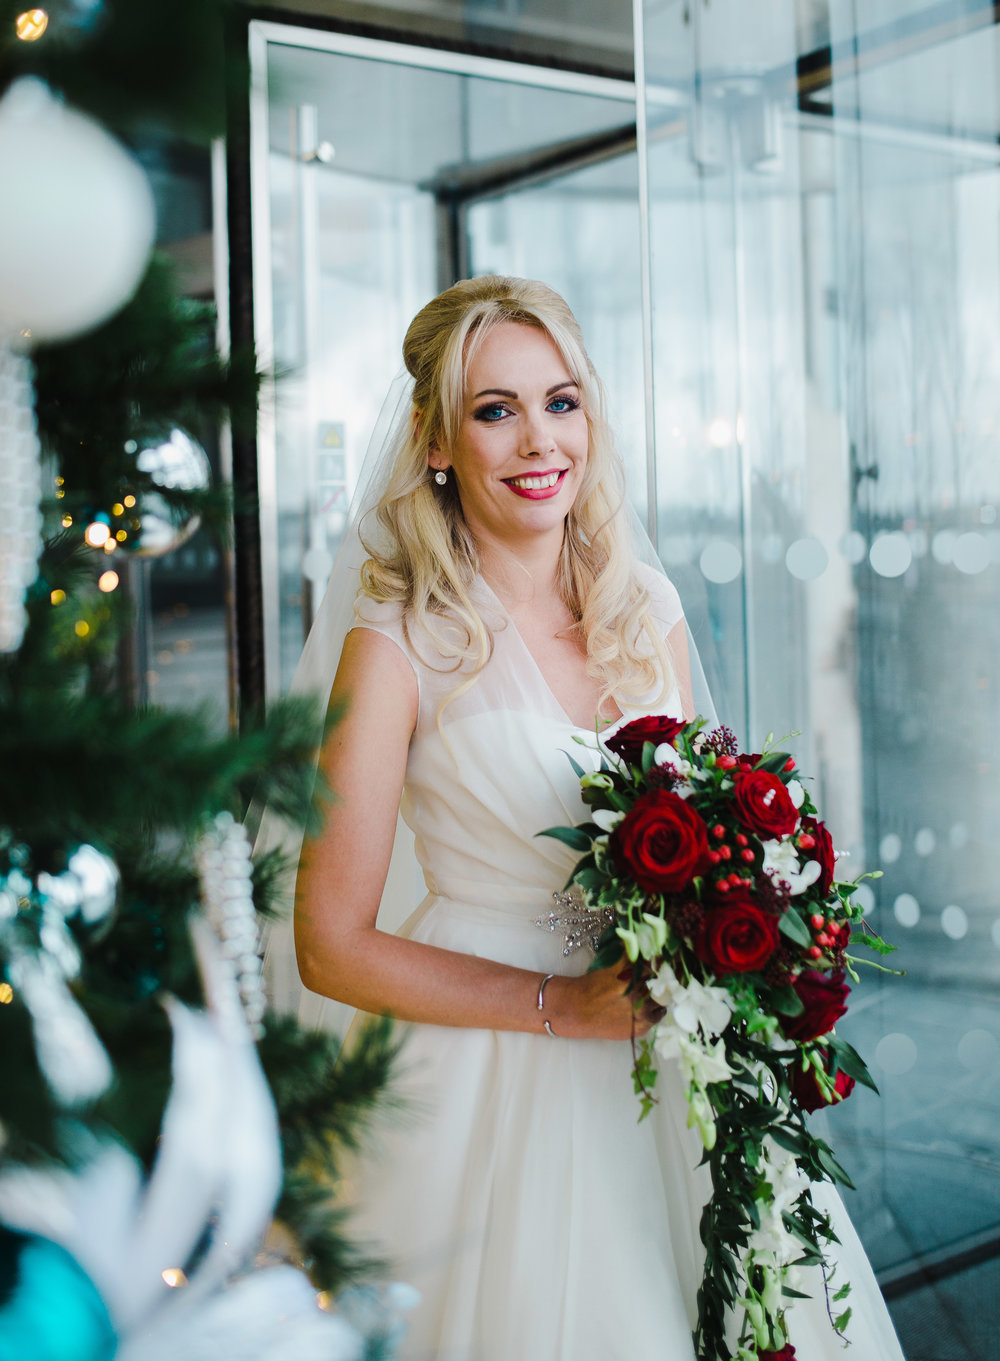 Portrait of the bride with her flower bouquet next to the christmas tree at the liver building- Christmas themed wedding